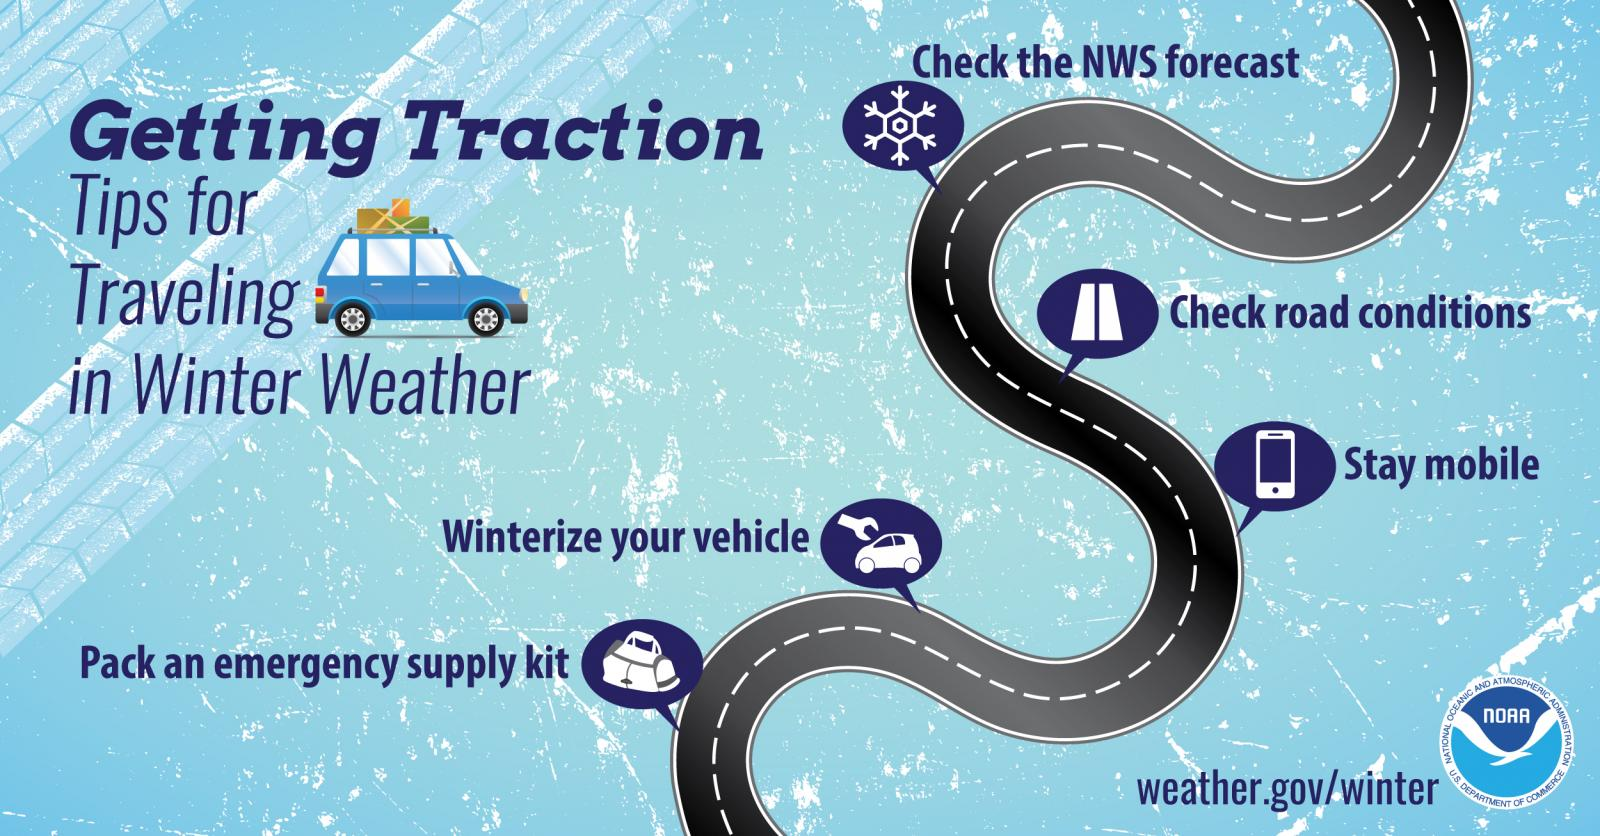 Winter Travel Reminders